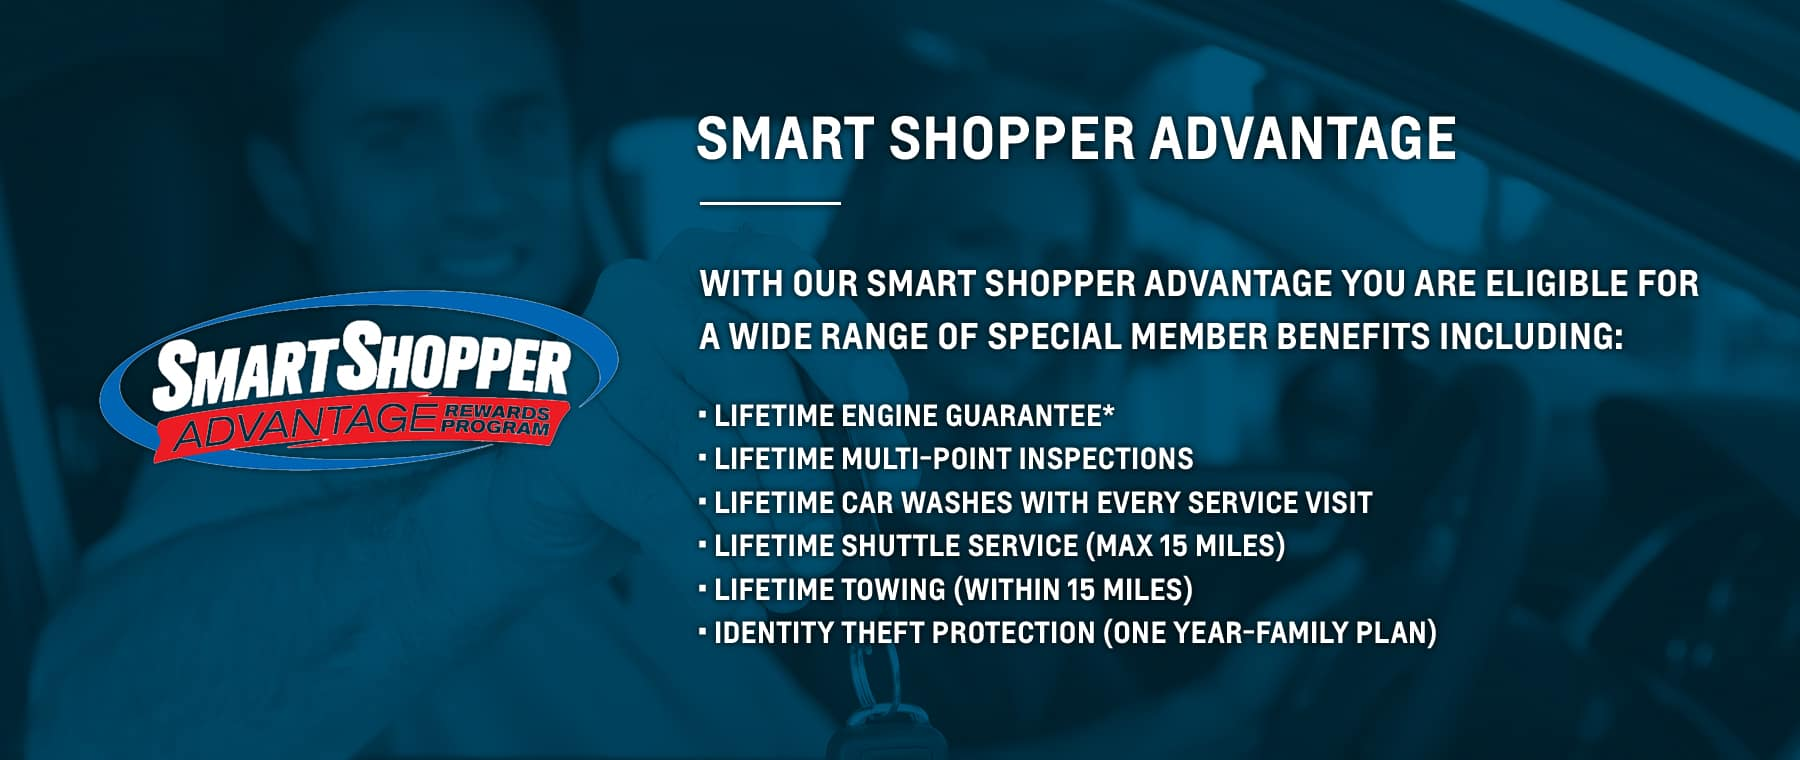 Smart Shopper Advantage